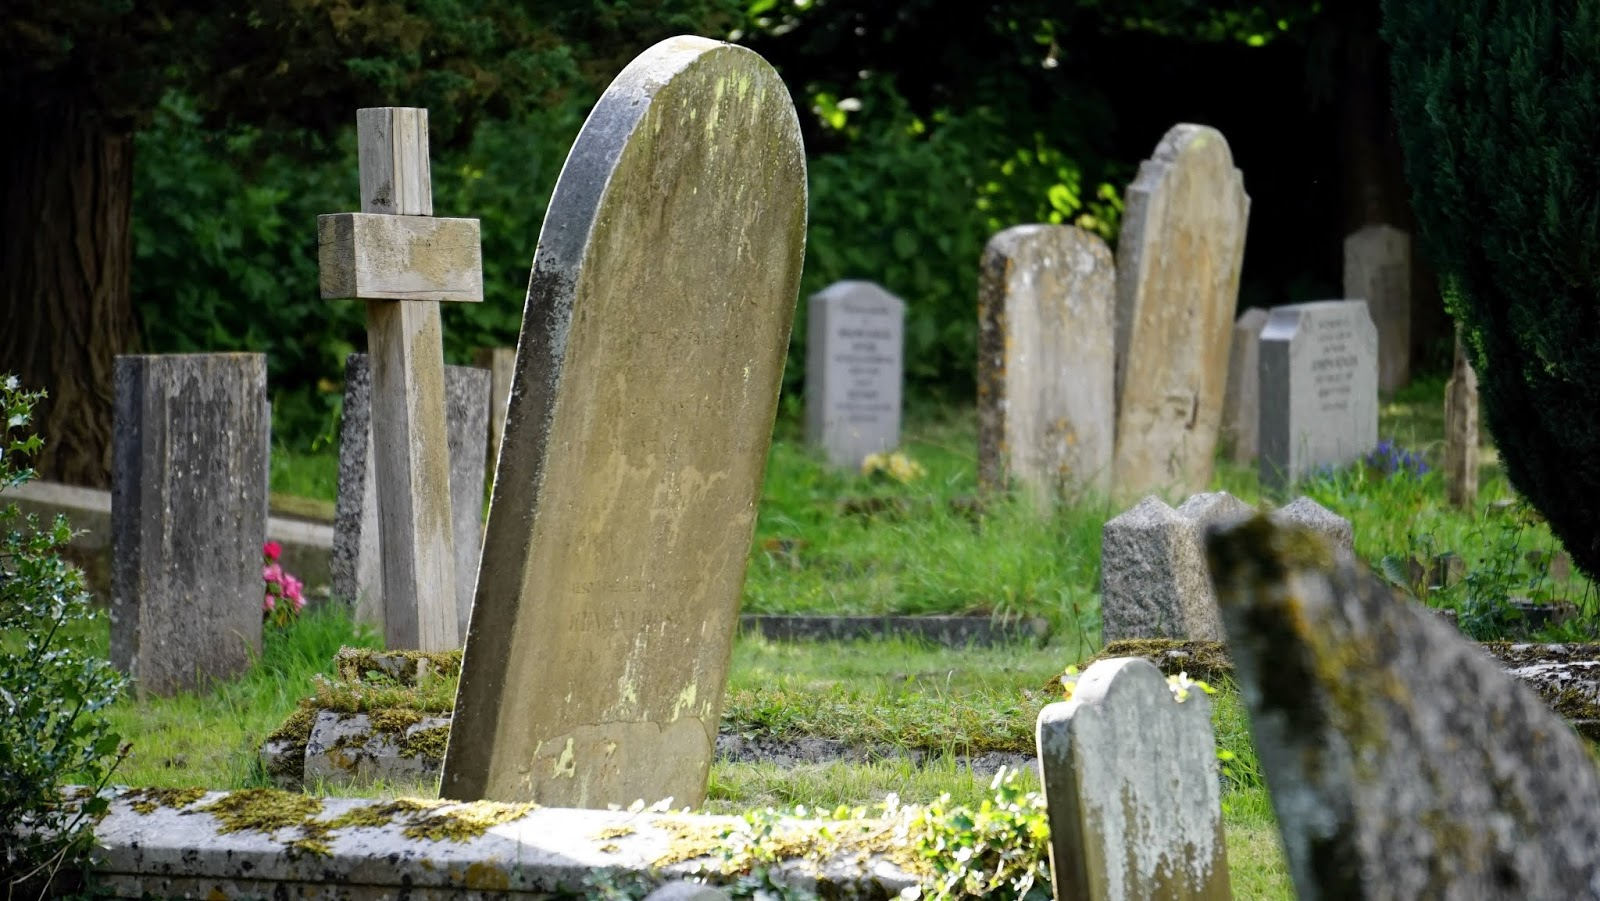 GOD WINKED AT SUCH IGNORANCE: Speaking to The Dead